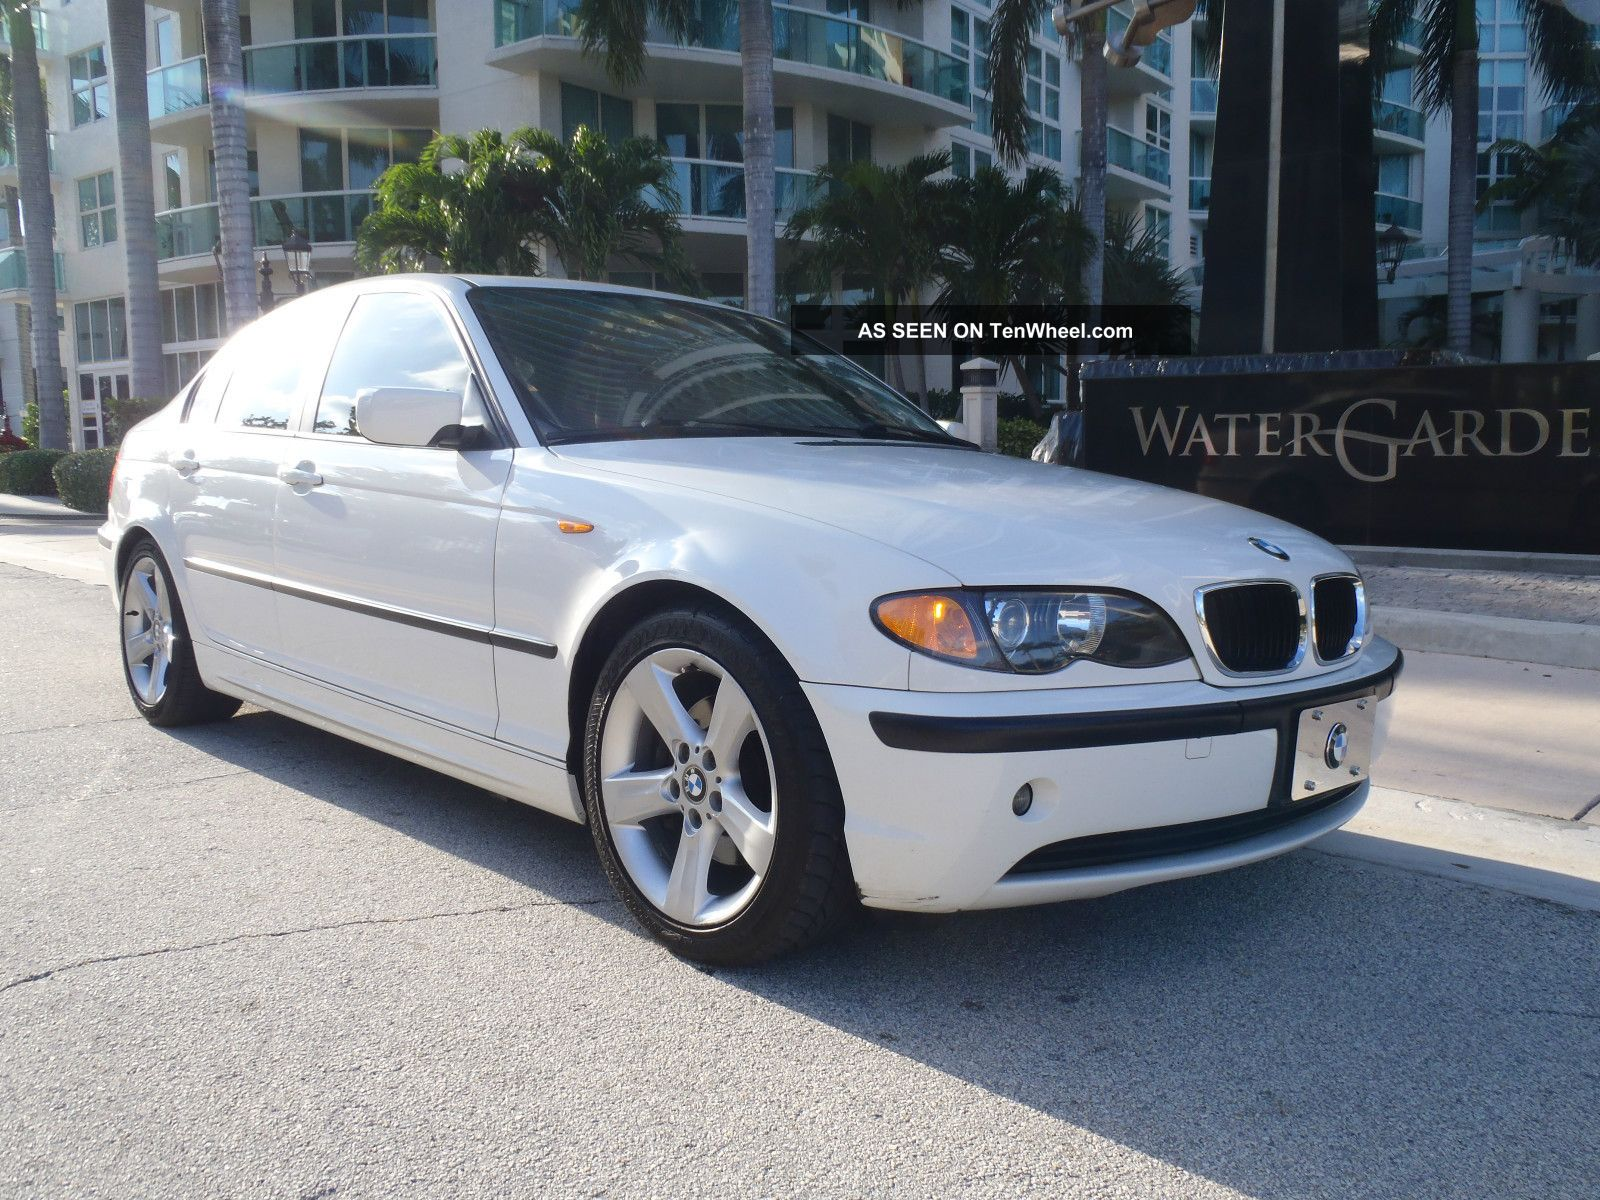 2004 White Bmw 325i / / Sport Package 3-Series photo